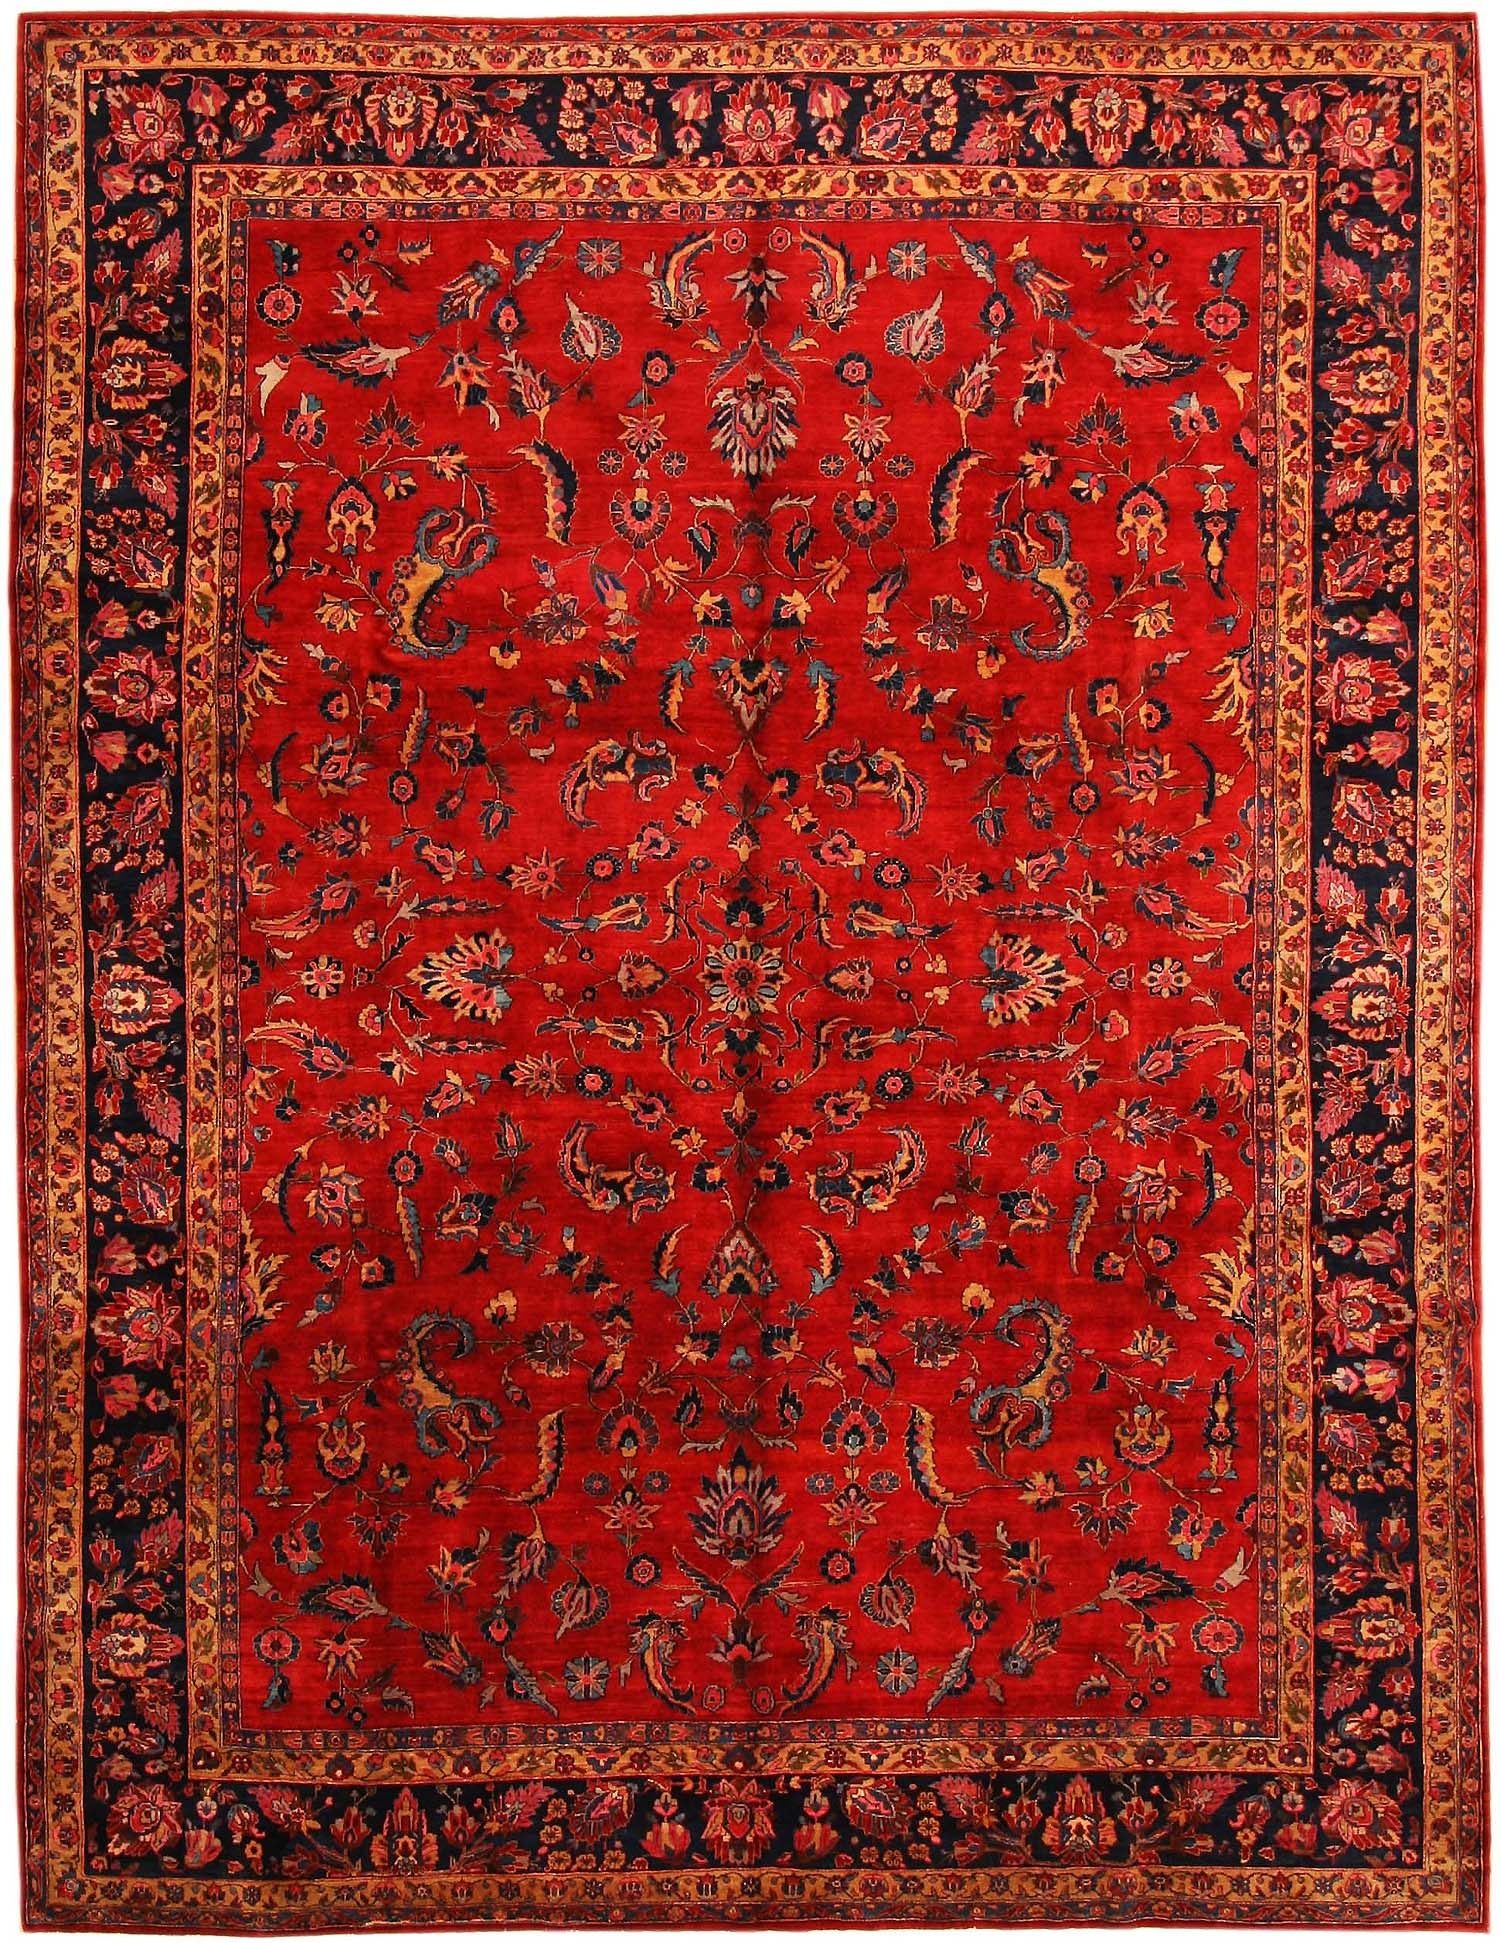 Rugs Persian Style Home Decors Collection With Regard To Persian Style Wool Rugs (View 6 of 15)